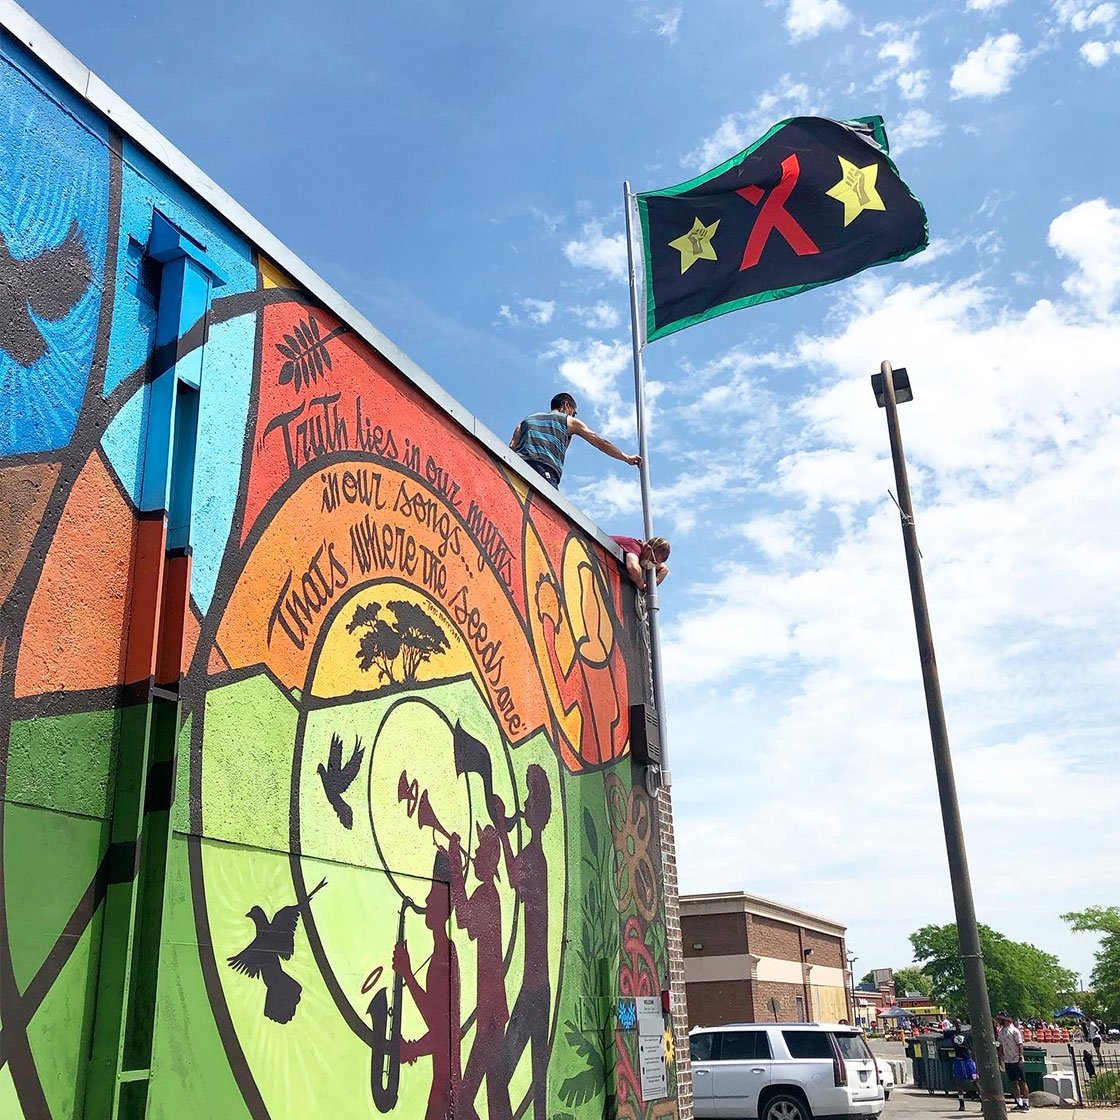 A colorful mural on the side of a building with a flag being raised from the roof